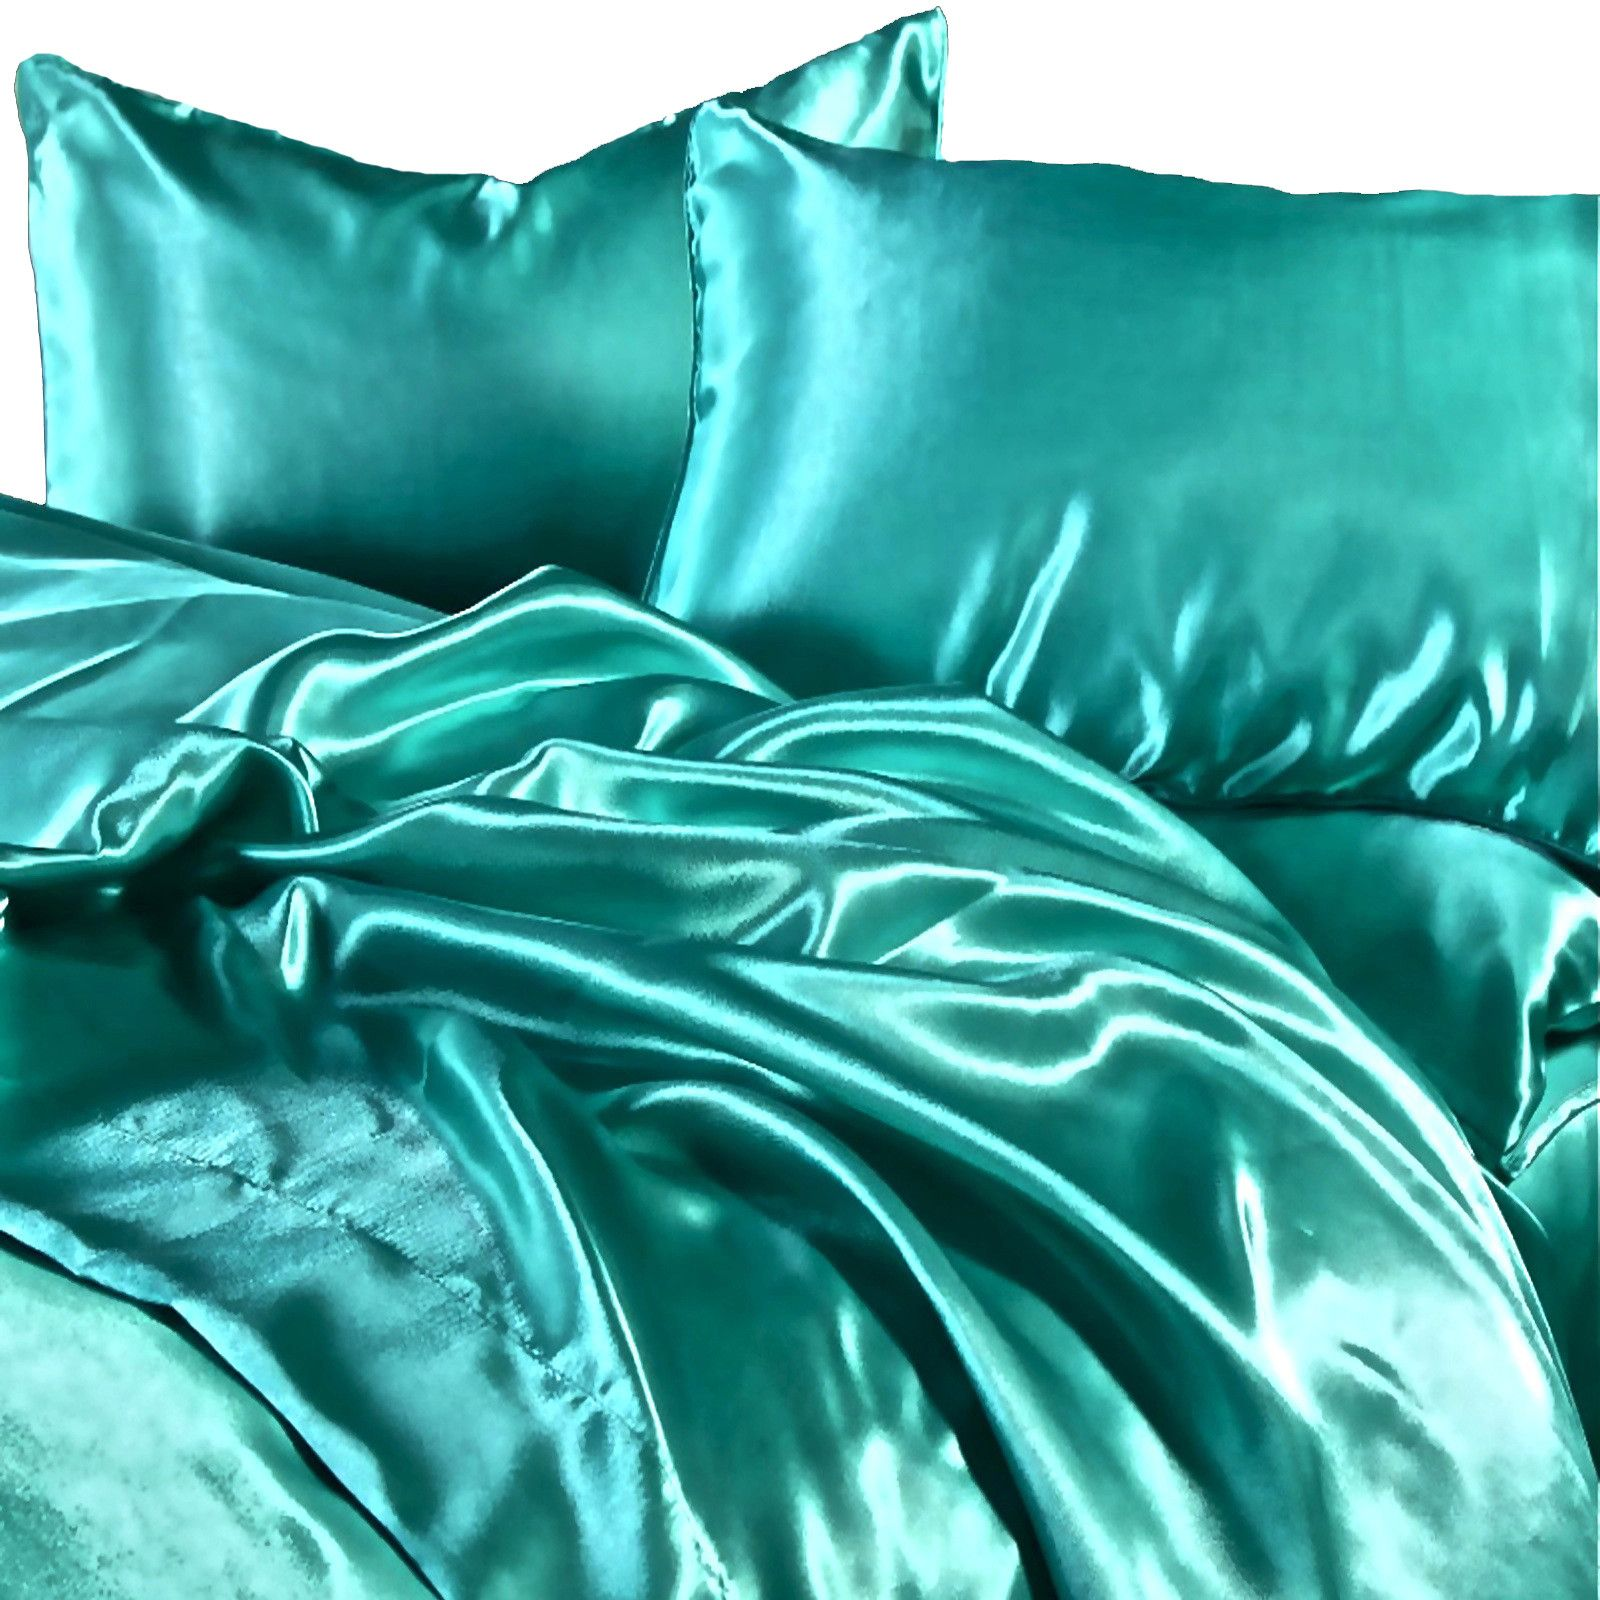 products rags personalized bedding tiffany and comforter inspired screenshot blue fashion name box ink co